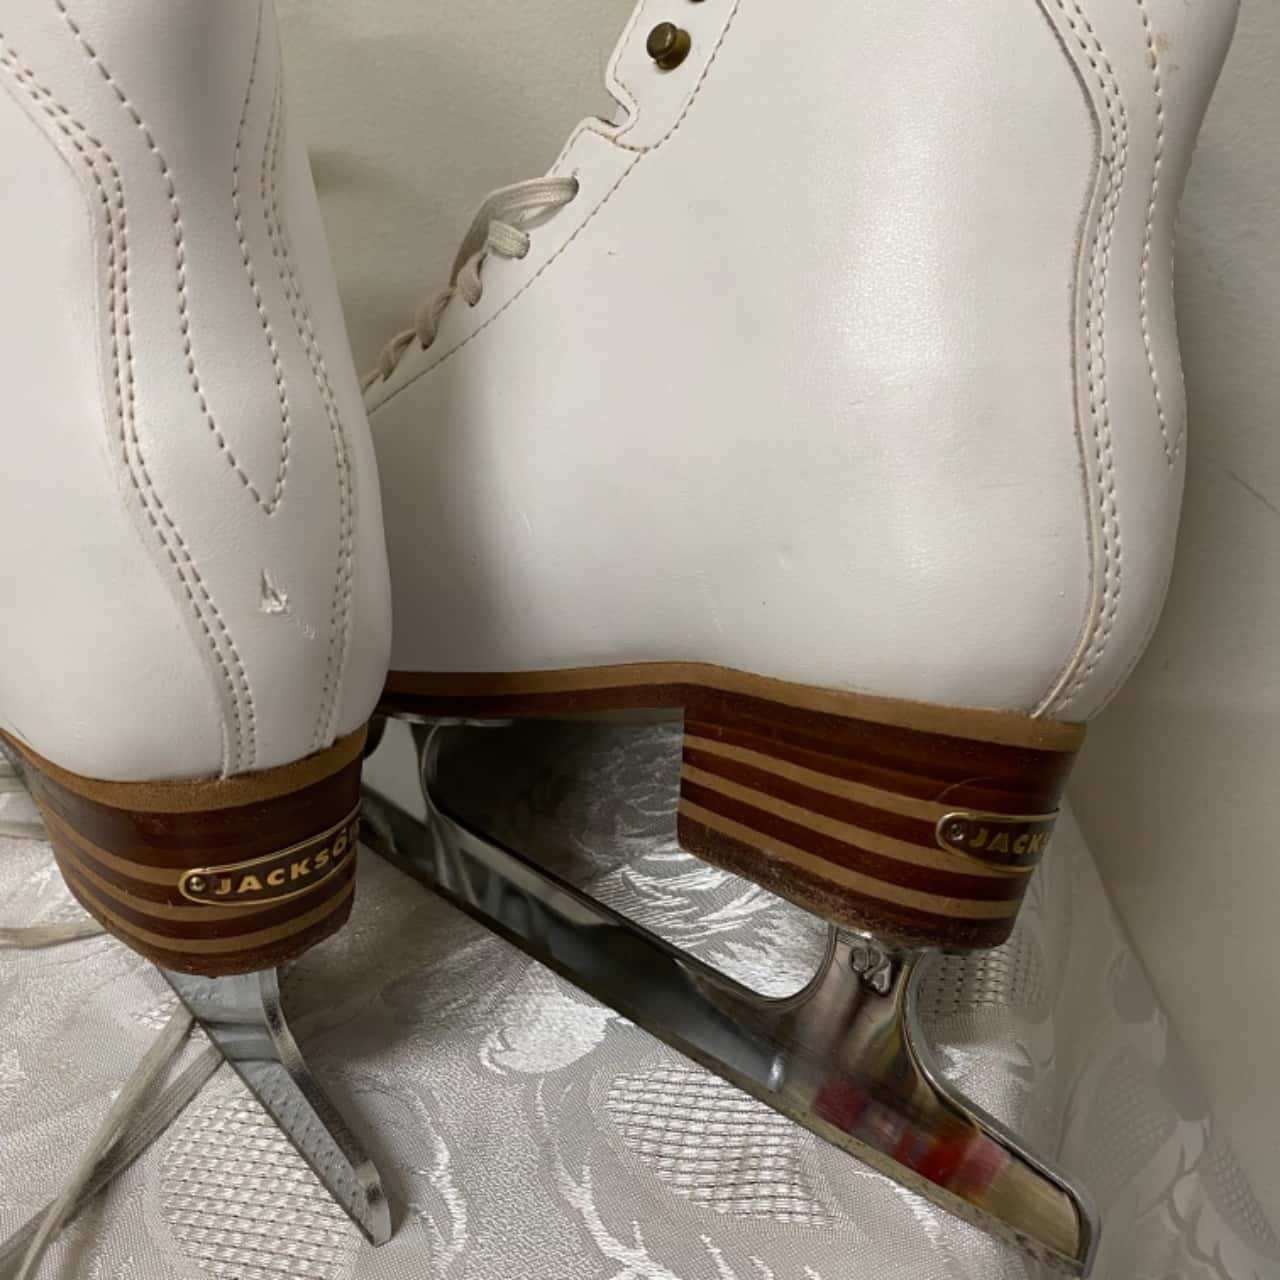 Jackson Competitor Figure Skating Boots Size 7 White